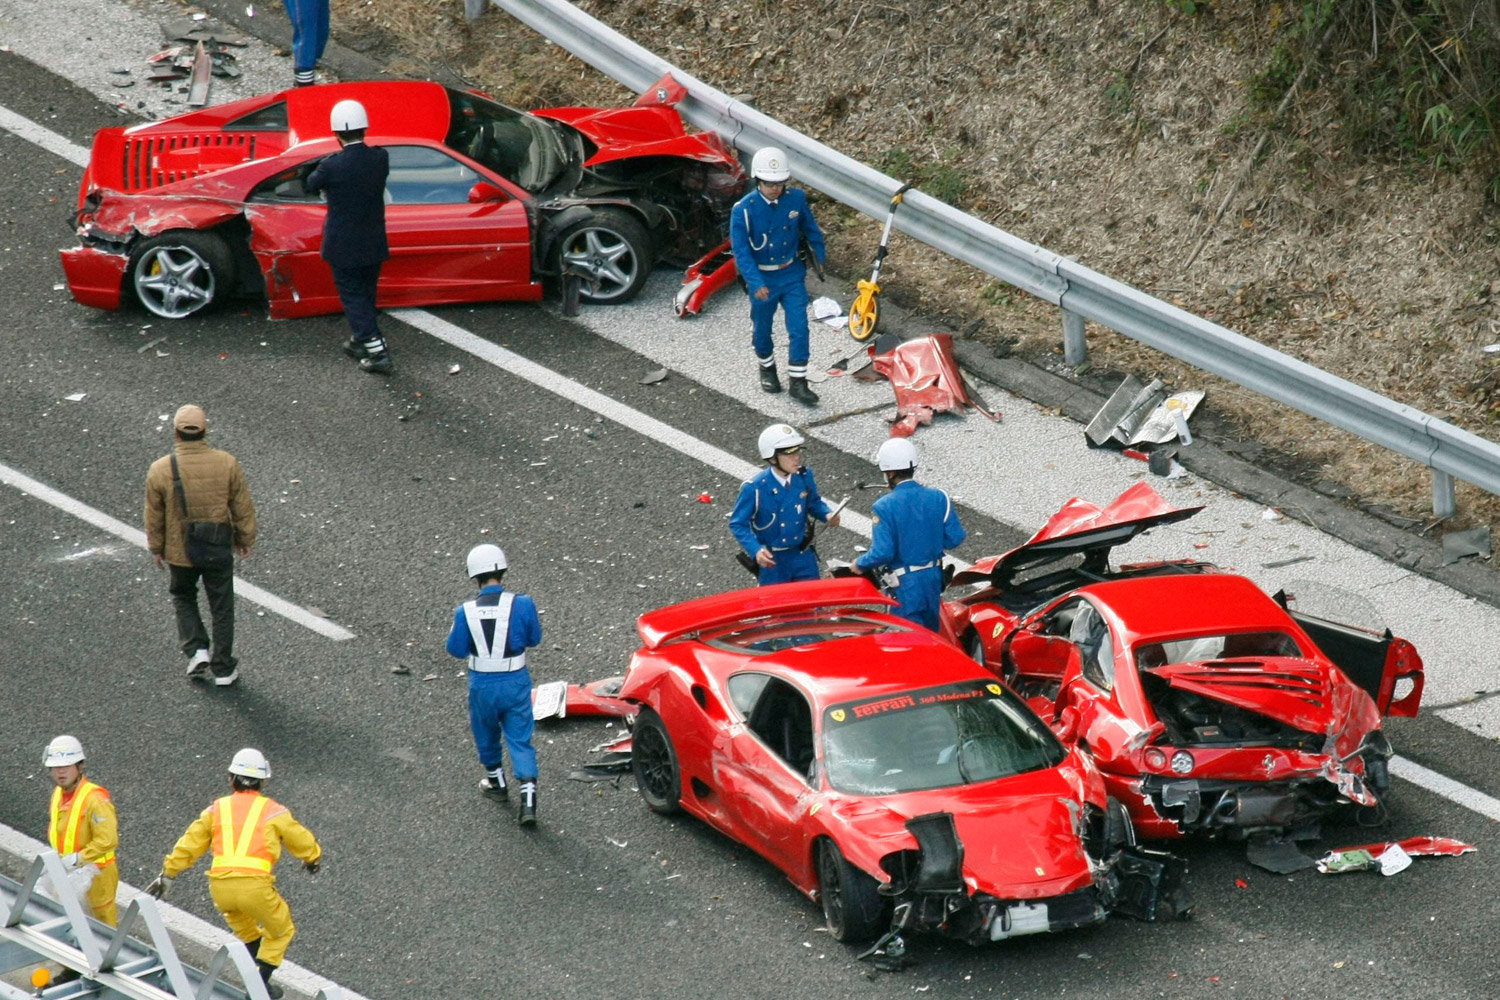 December 4, 2011. Police officers investigate wrecked luxury cars at the site of a traffic accident on the Chugoku Expressway in Shimonoseki, southwestern Japan. Ten people were slightly injured in the pile up involving eight Ferraris, a Lamborghini, two Mercedes-Benz and two Japanese cars, according to the police. A group of luxury sports car fans were believed to be driving together when the accident occurred.